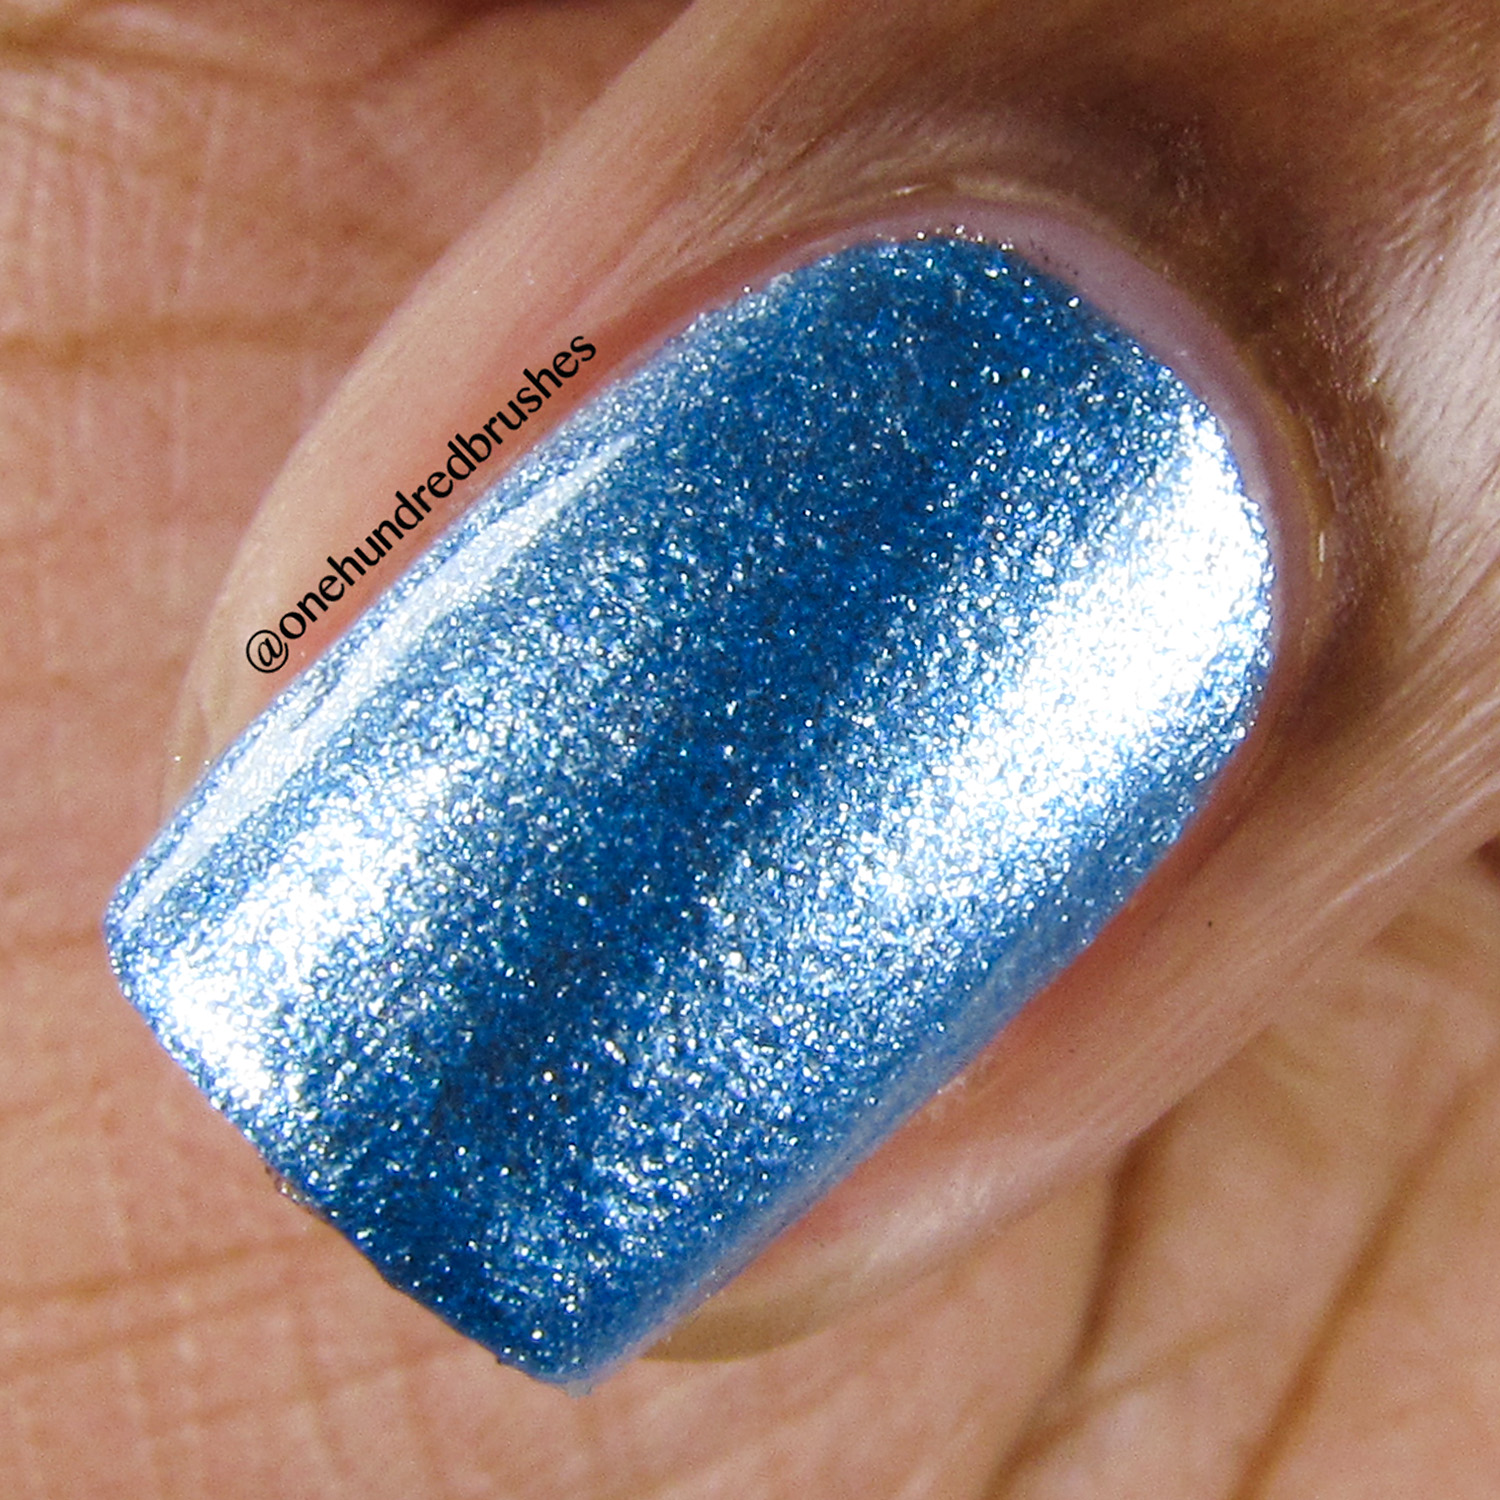 Blue Mirror - macro - Indie Patty Lopes - psyches beau - mirror collection